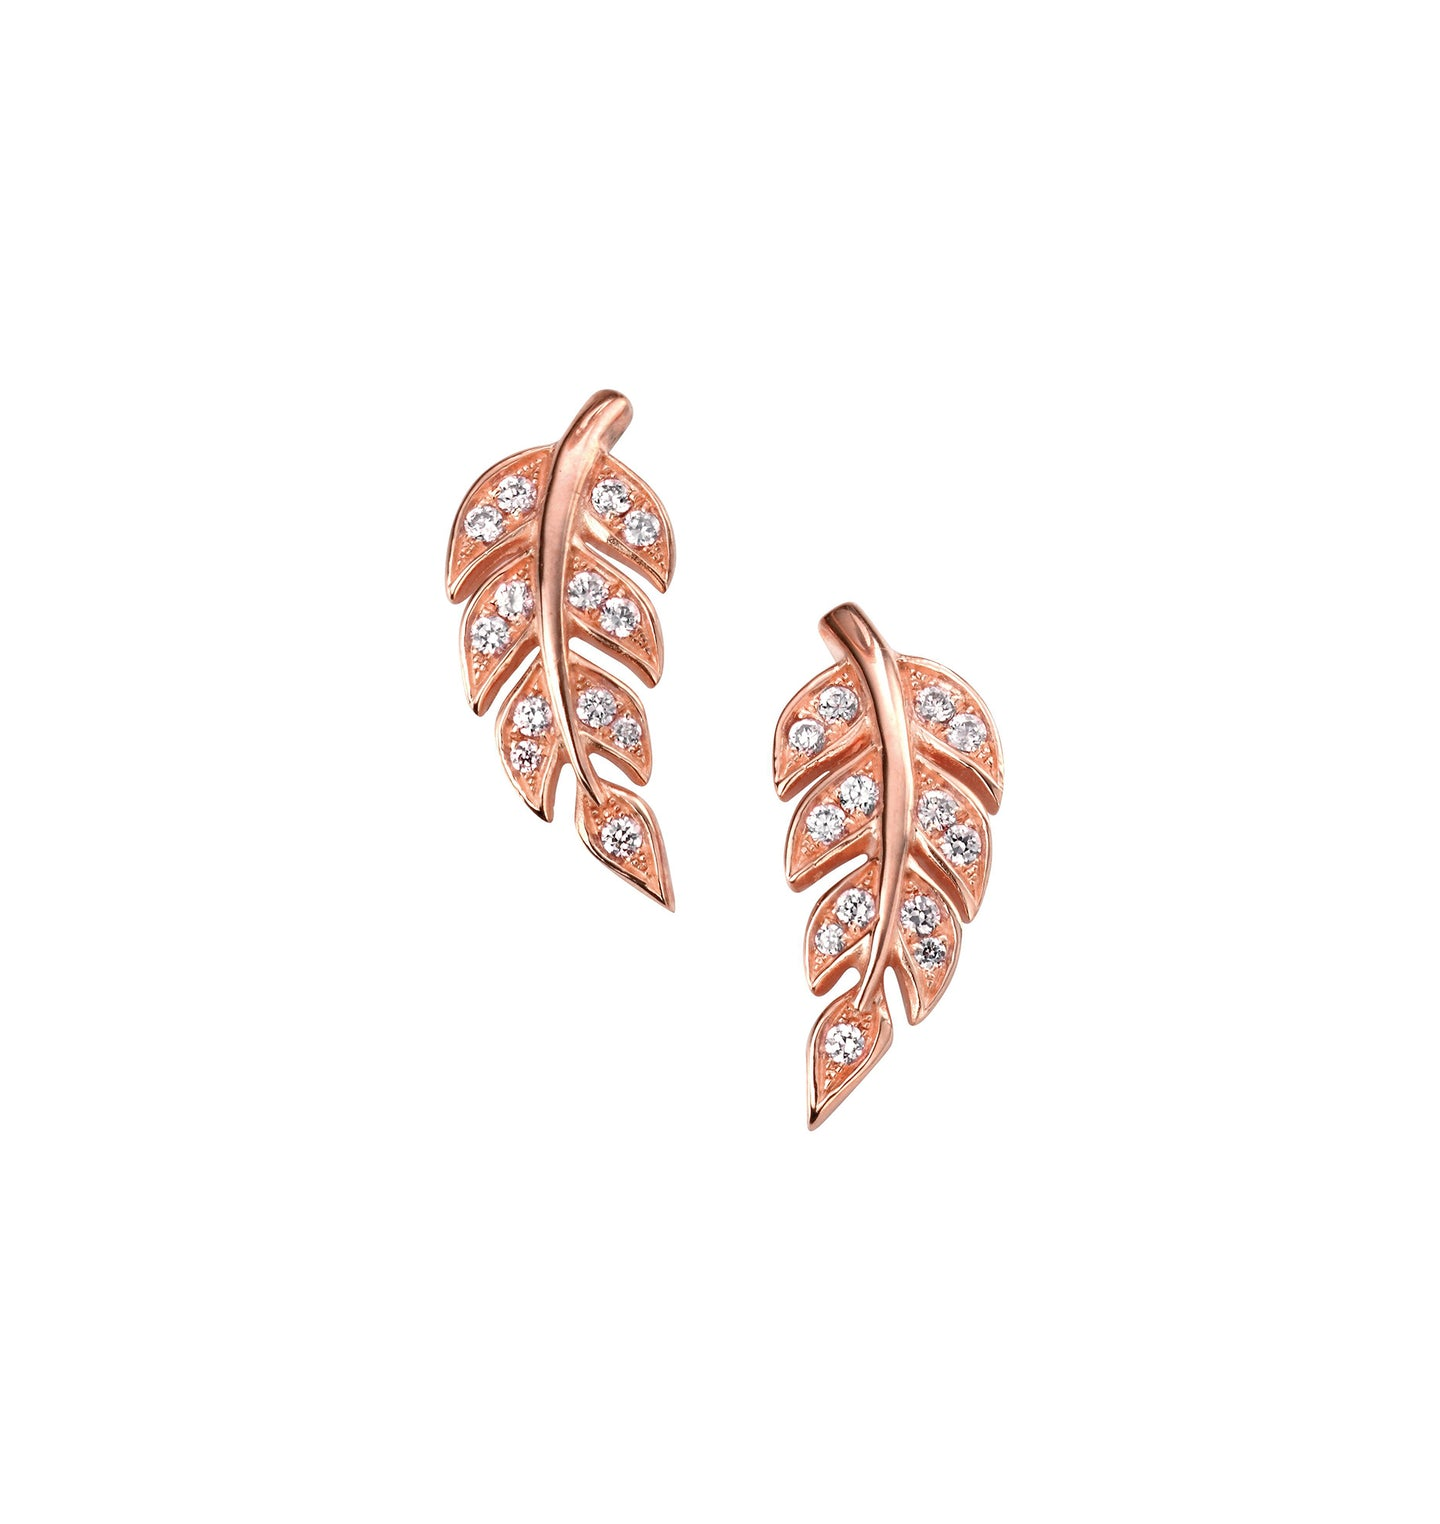 Rose Gold Leaf studs